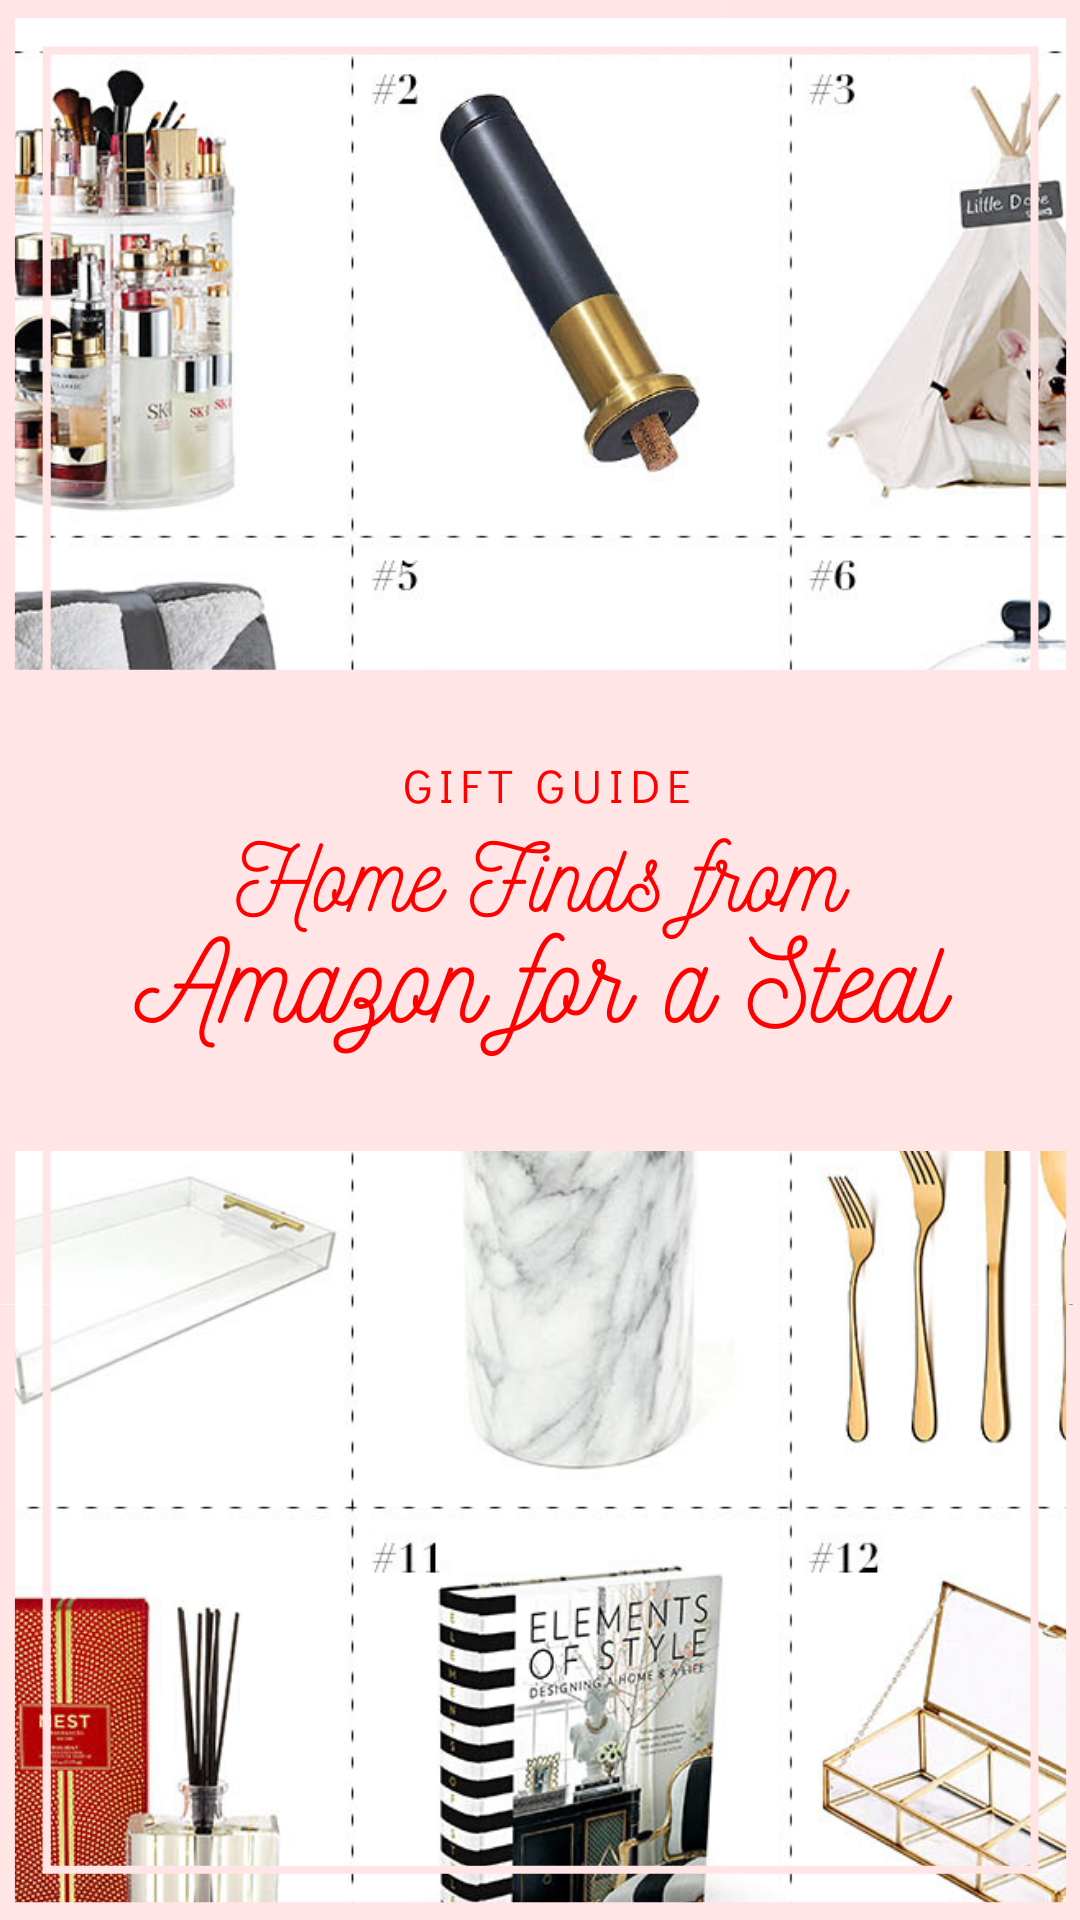 gift guide home finds from amazon, gifts from amazon, home gifts from amazon, gifts for the hostess, gifts for the homebody, gift ideas for her, best gift ideas for her, home decor gifts ideas, home finds gift ideas, red soles and red wine, 2019 gift guide